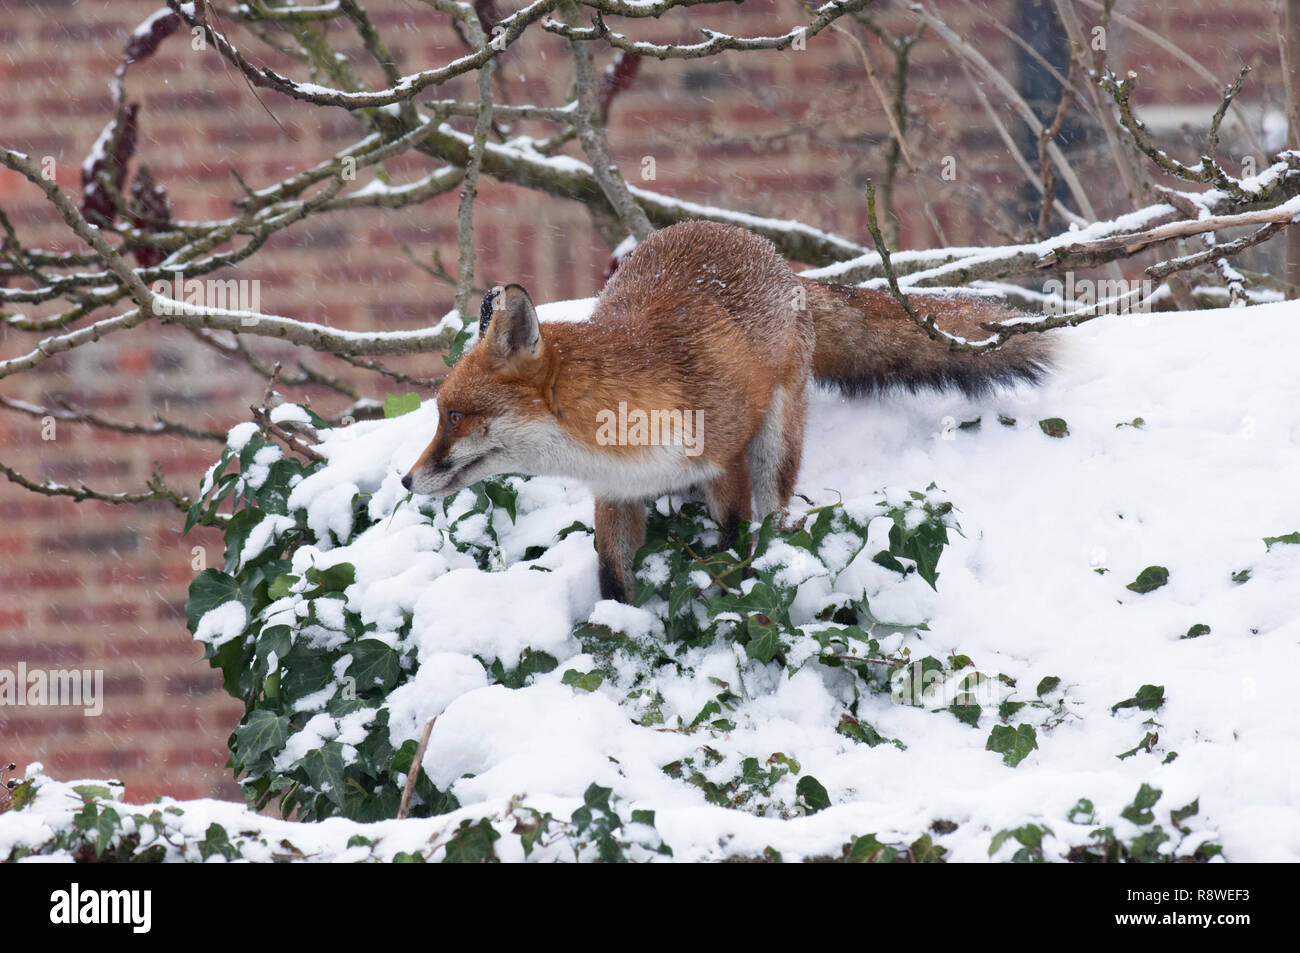 Red Fox, Vulpes vulpes, in winter snow standing on garden shed roof, London, United Kingdom Stock Photo